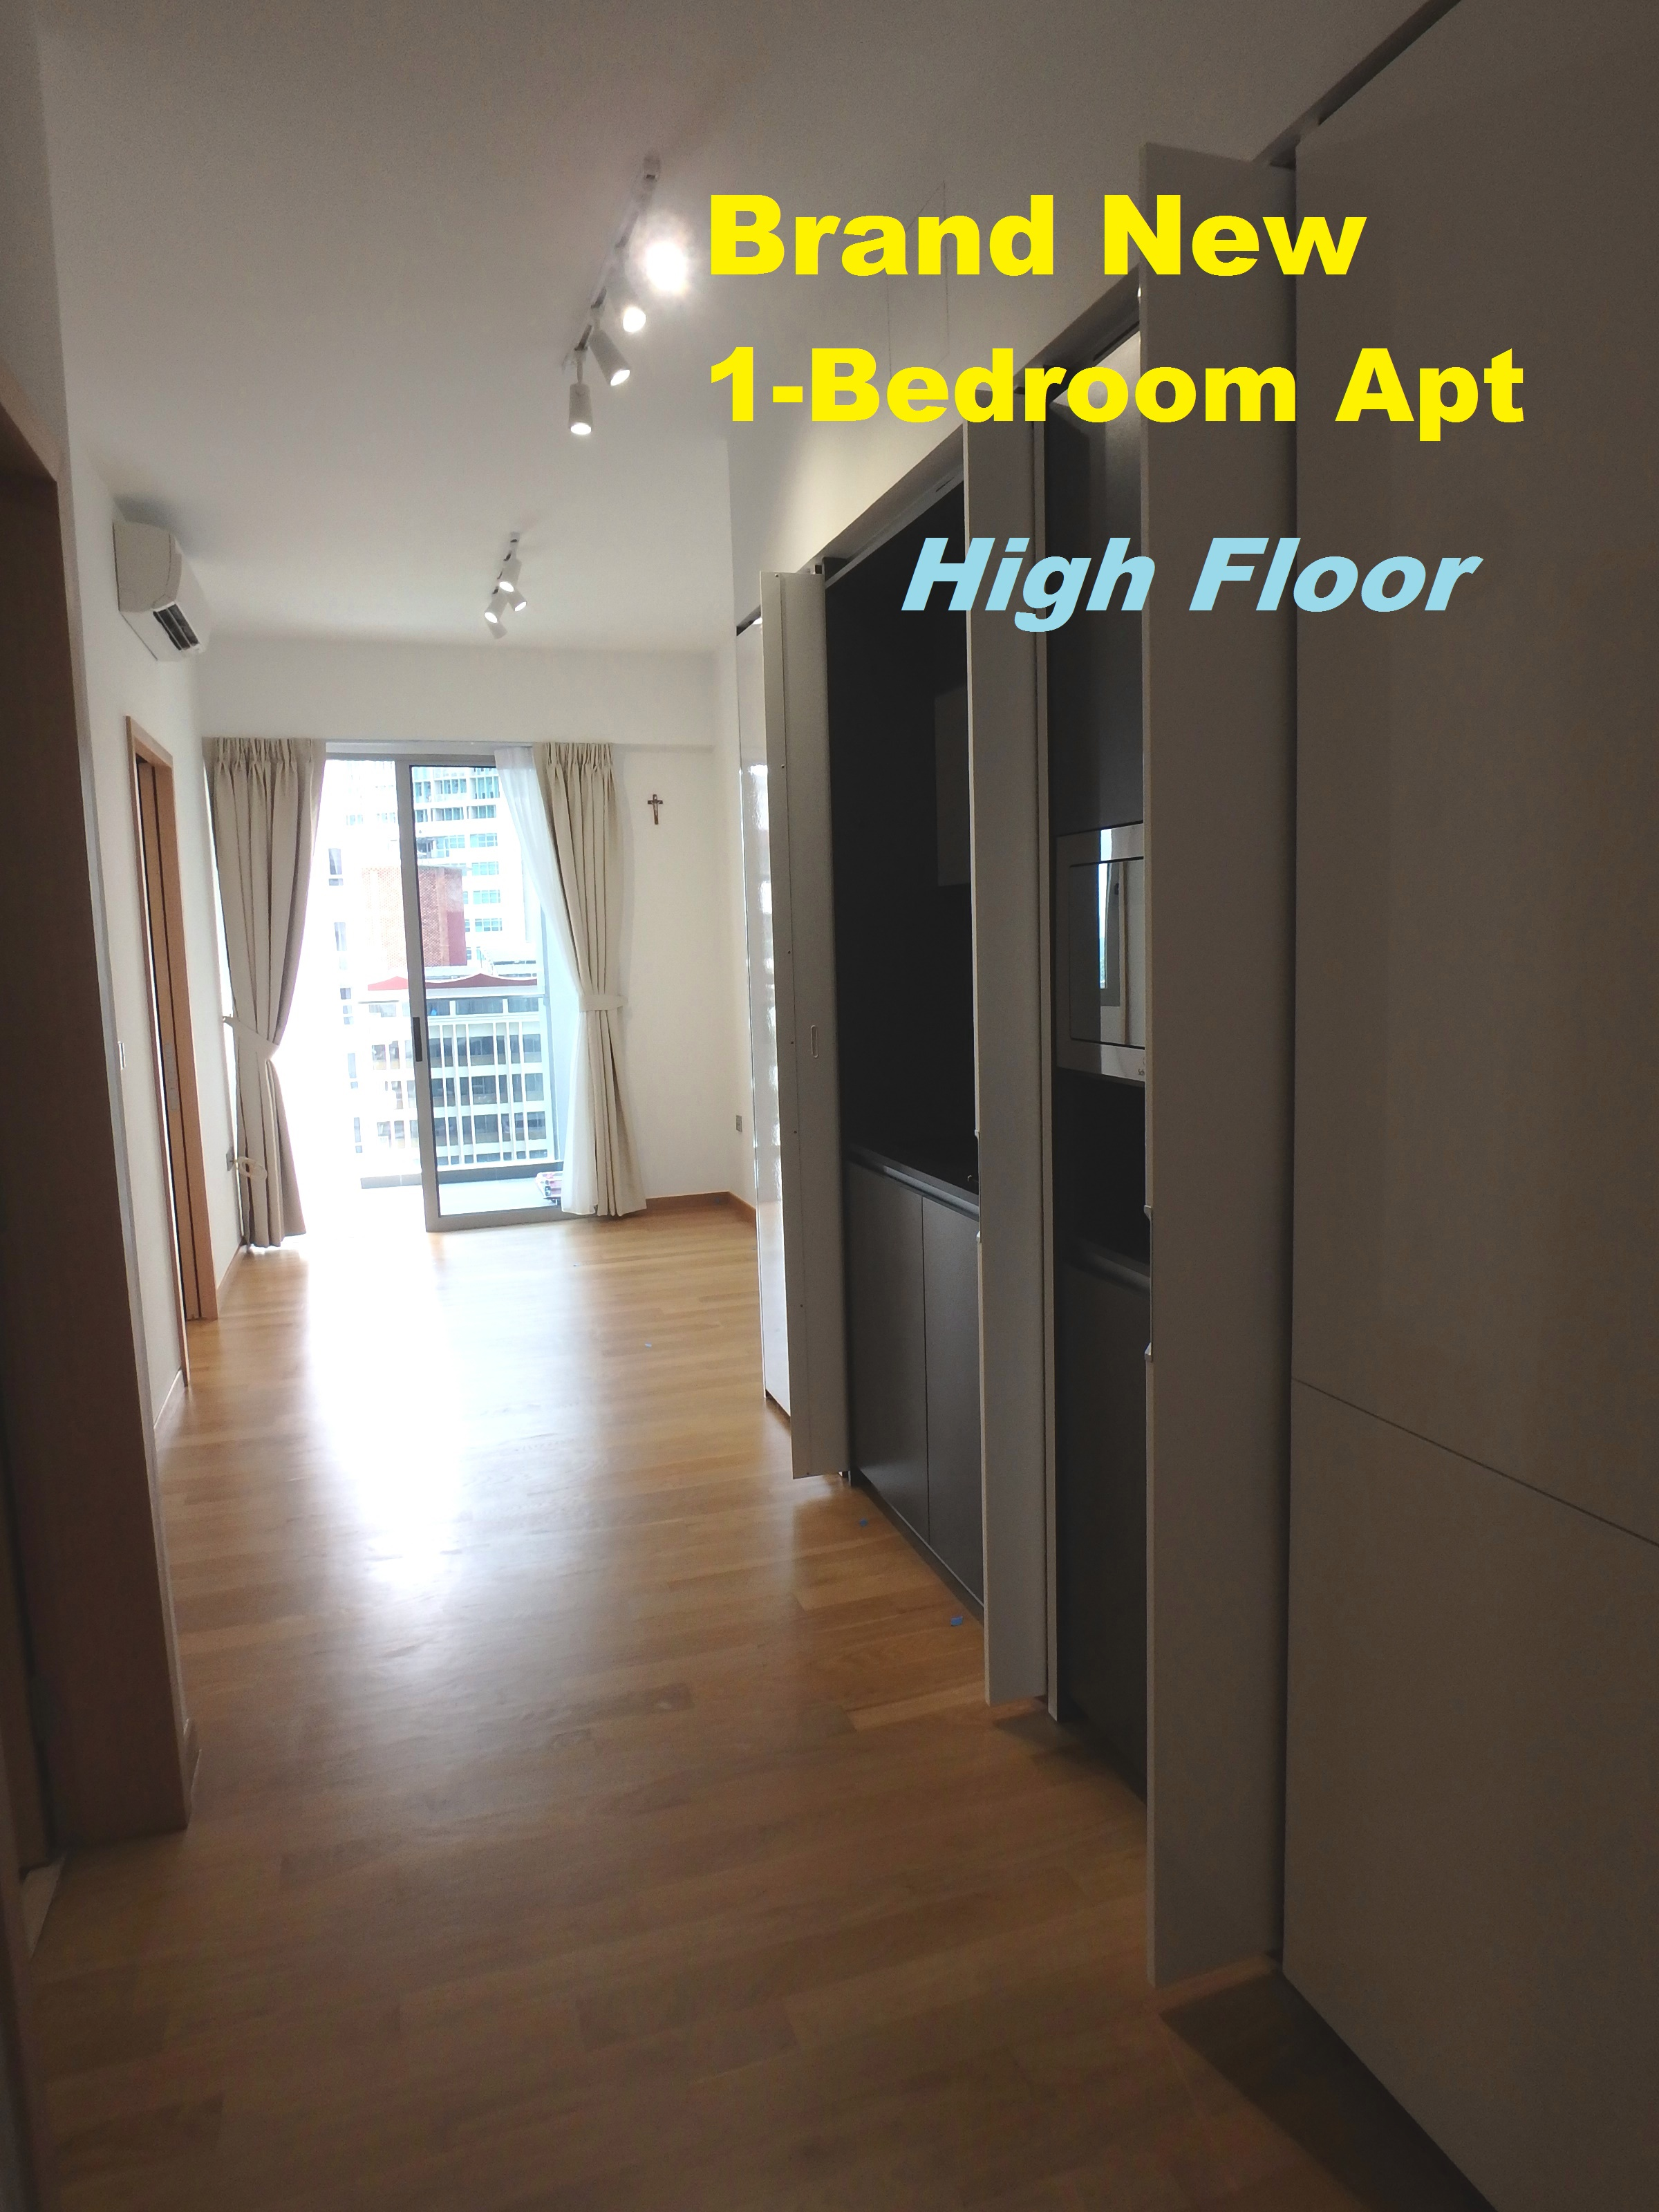 Brand New Modern 1 Bedroom Apartment Near Orchard Road And Novena Area Comfortable 484sf Size With Efficient Layout Ious Which Is Enough